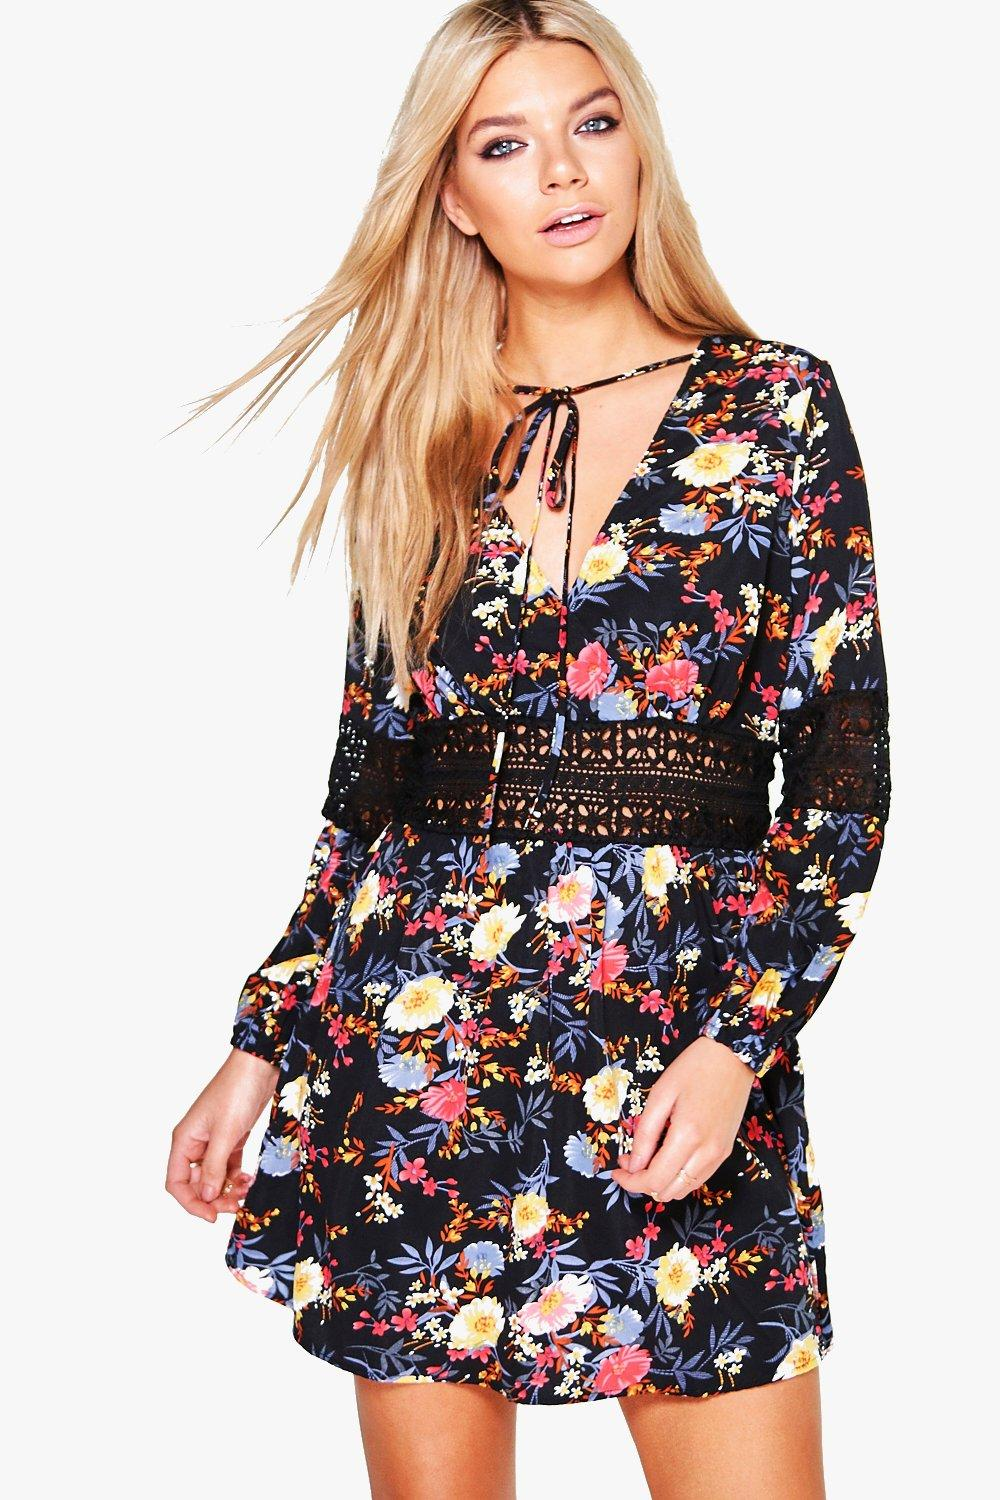 Lucy Floral Lace Insert Tie Neck Skater Dress